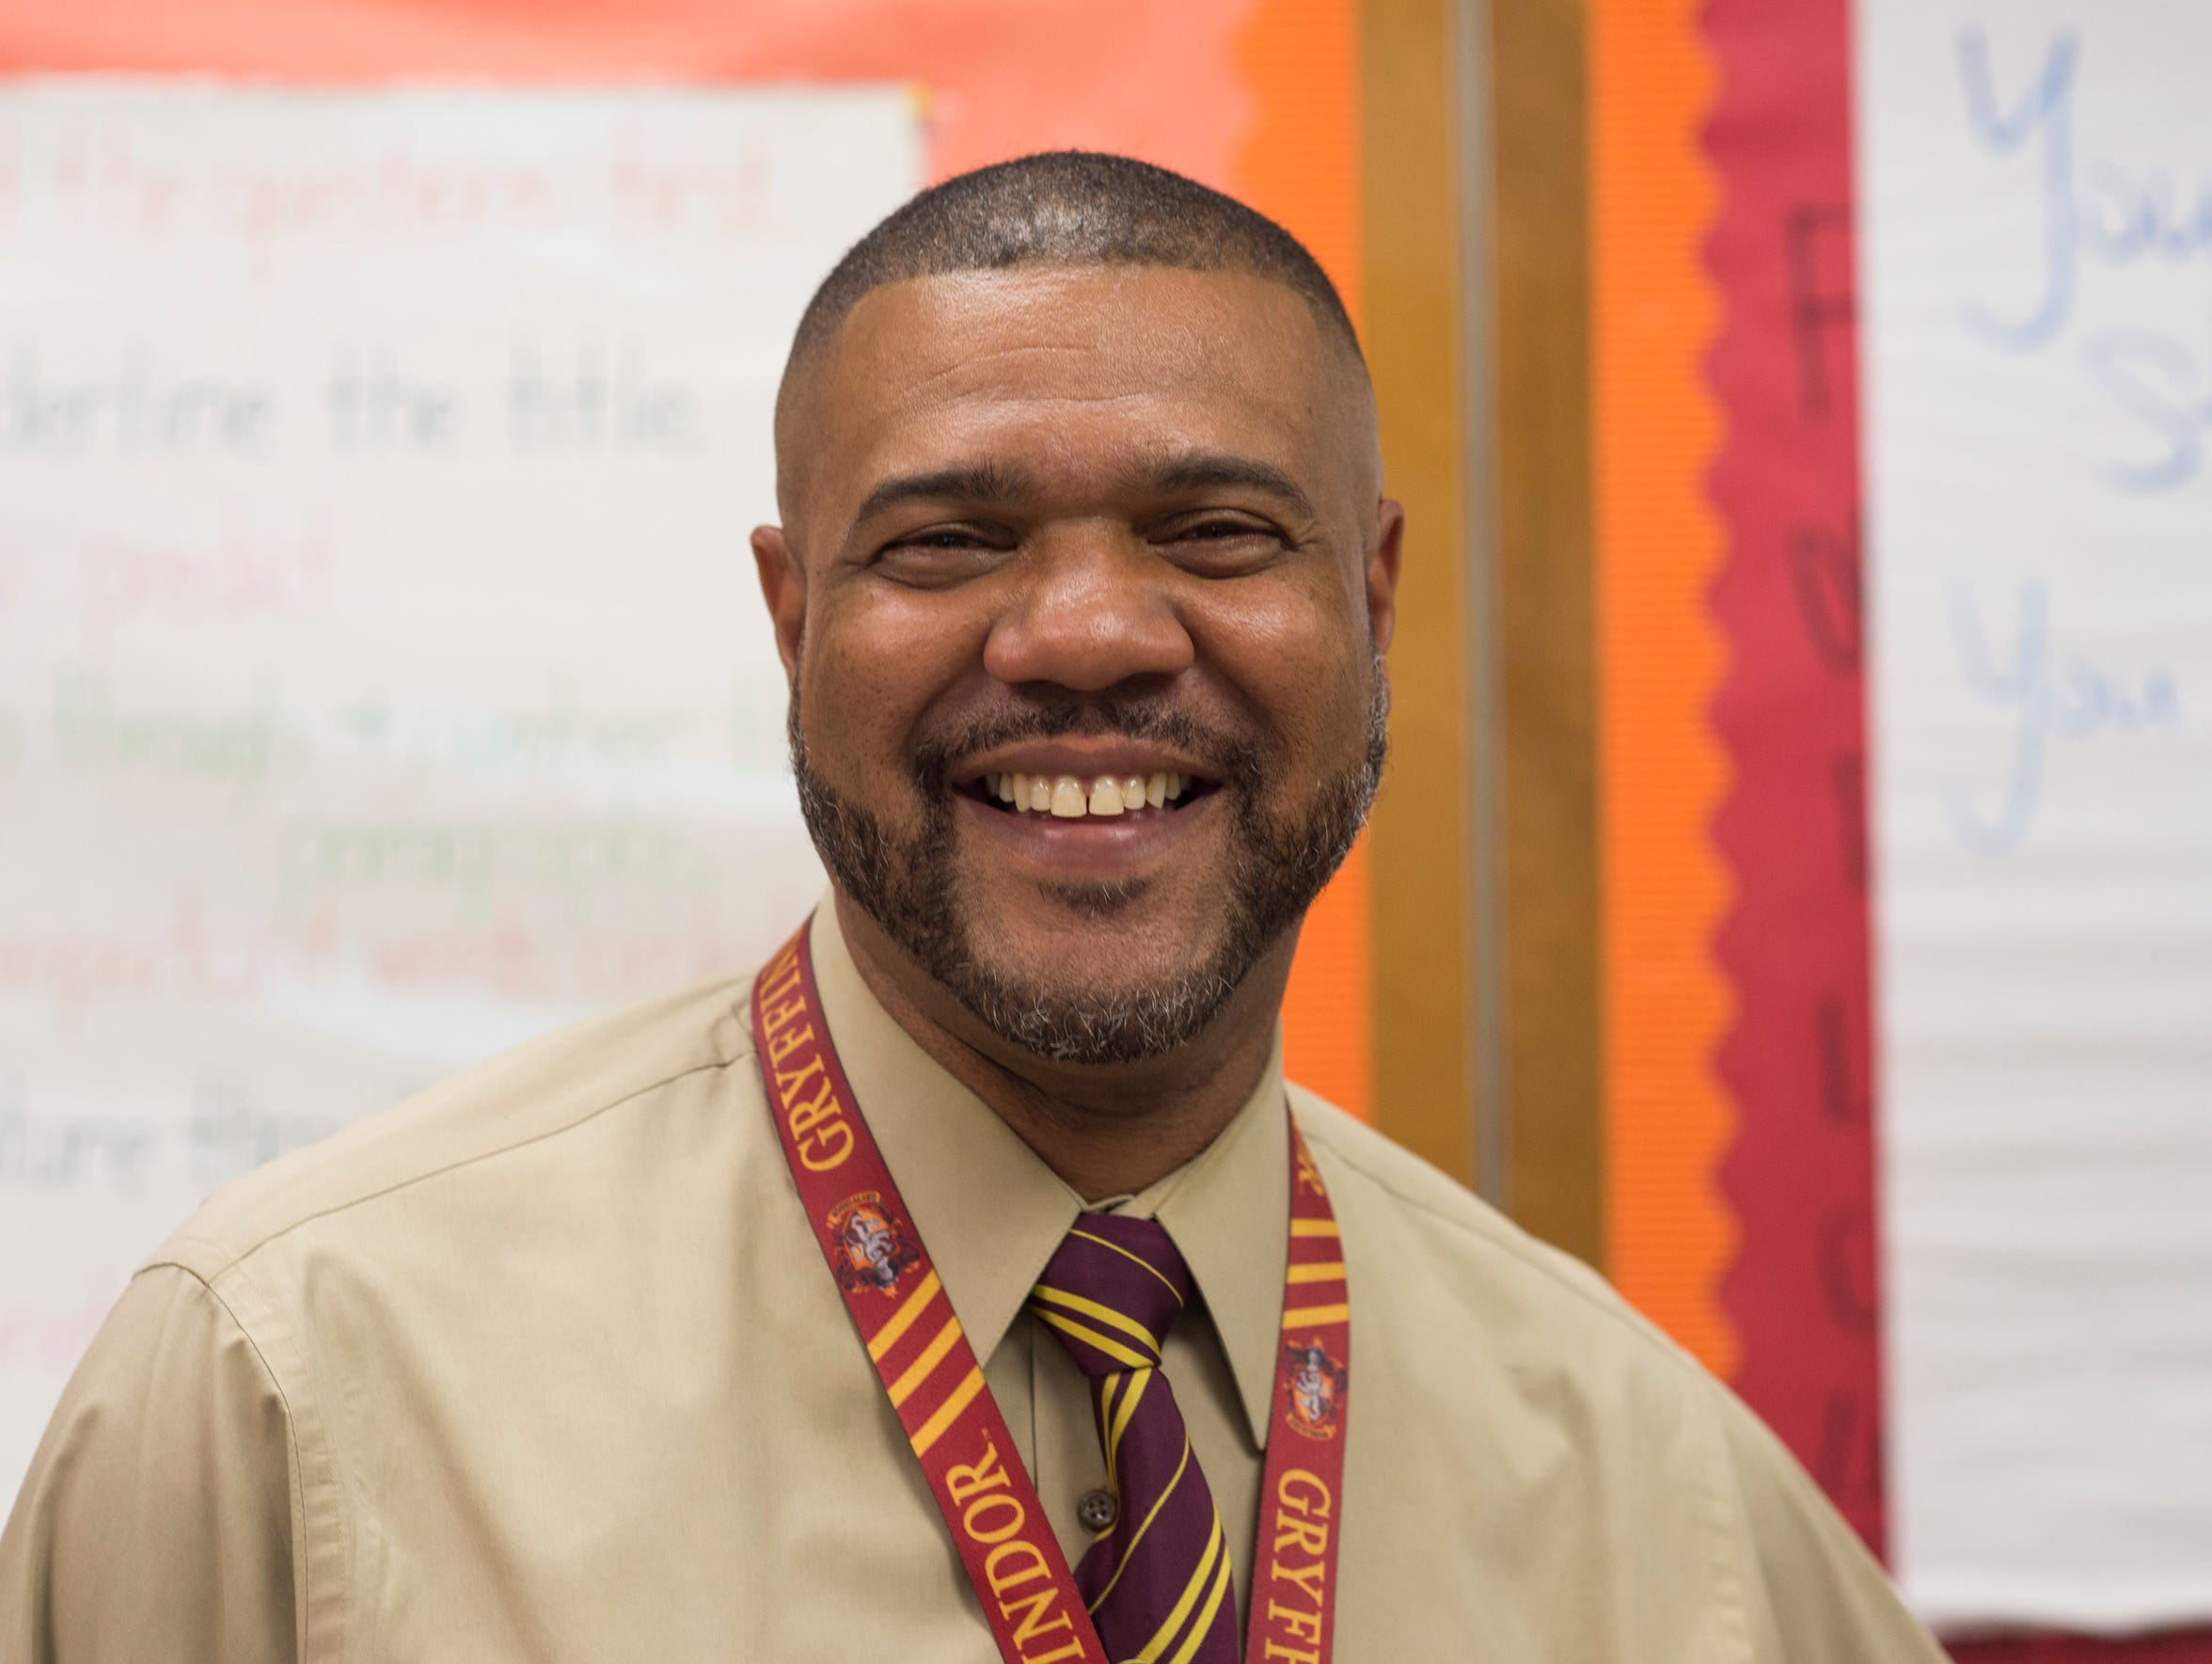 Jonathan Hilliard, a fourth-grade teacher at Apollo